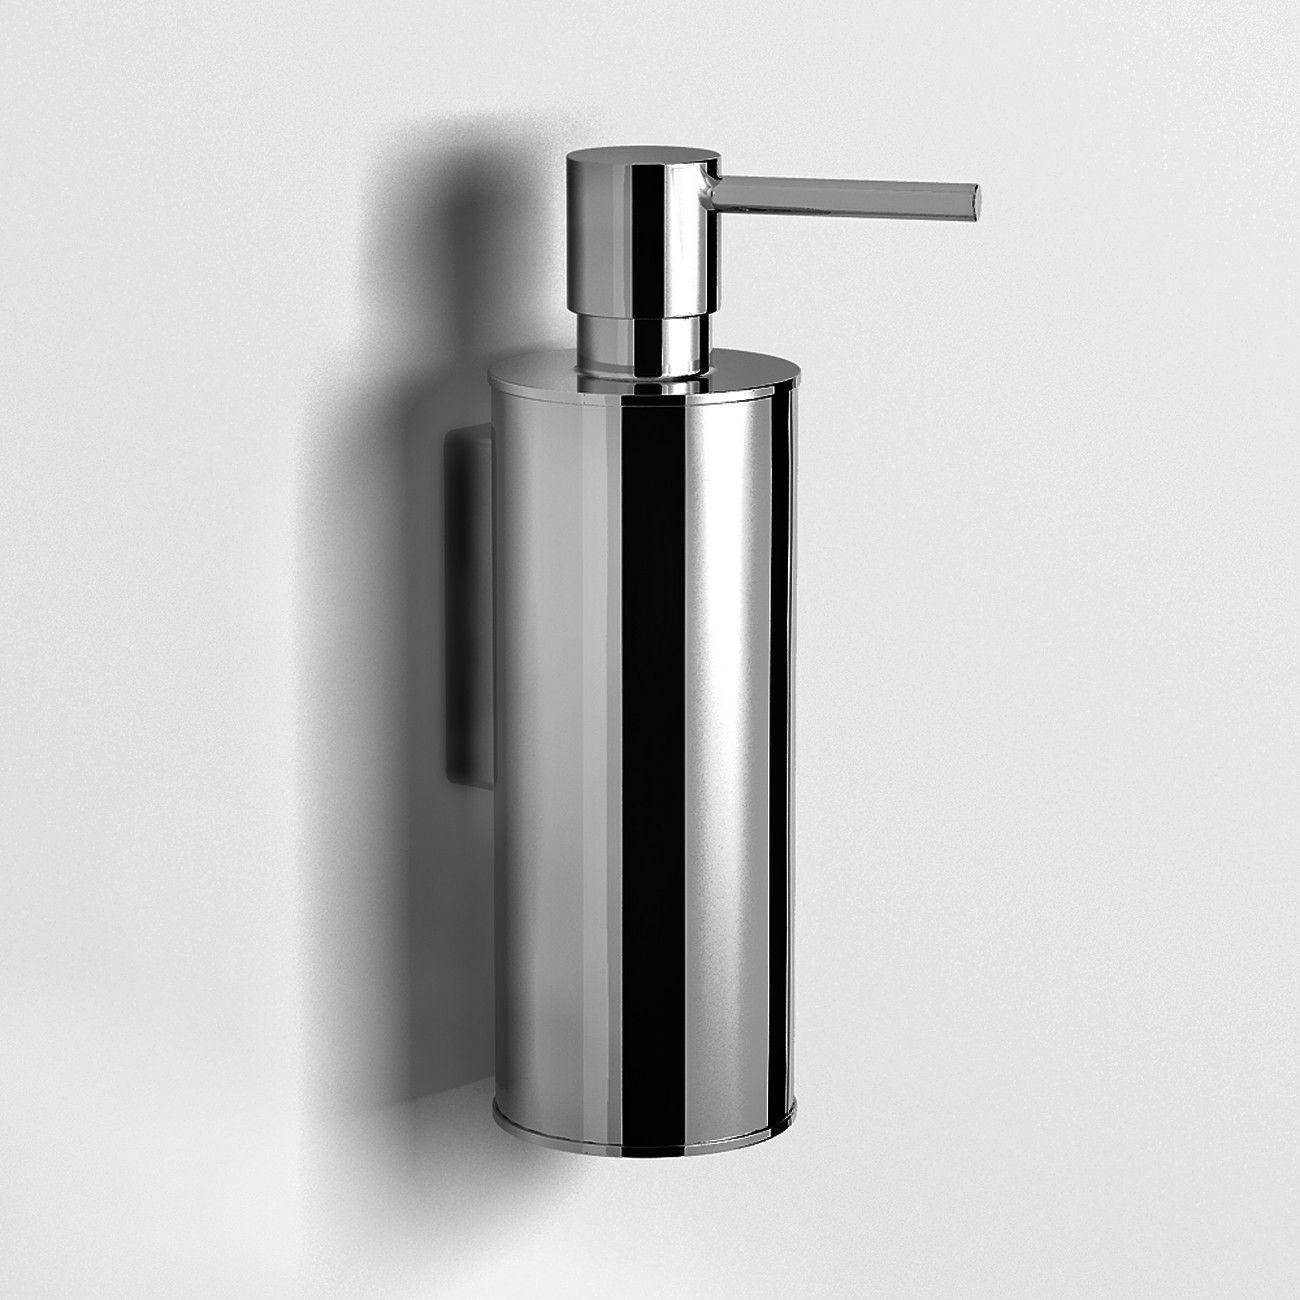 Myhill Wall Mounted Soap Dispenser Deisgner Bathroom